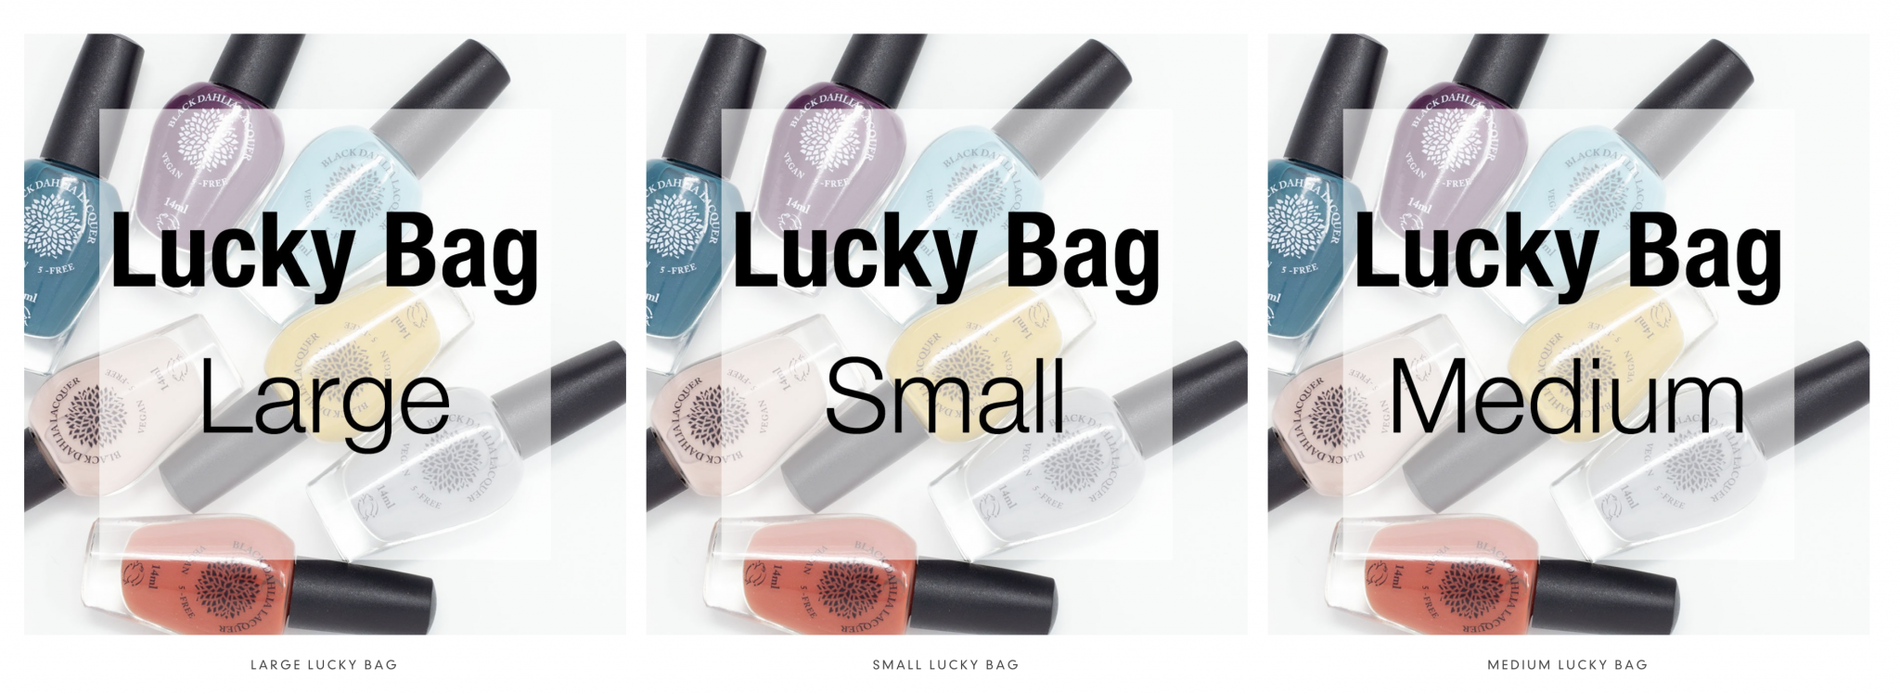 Black Dahlia Lacquer Lucky Bags – On Sale Now!